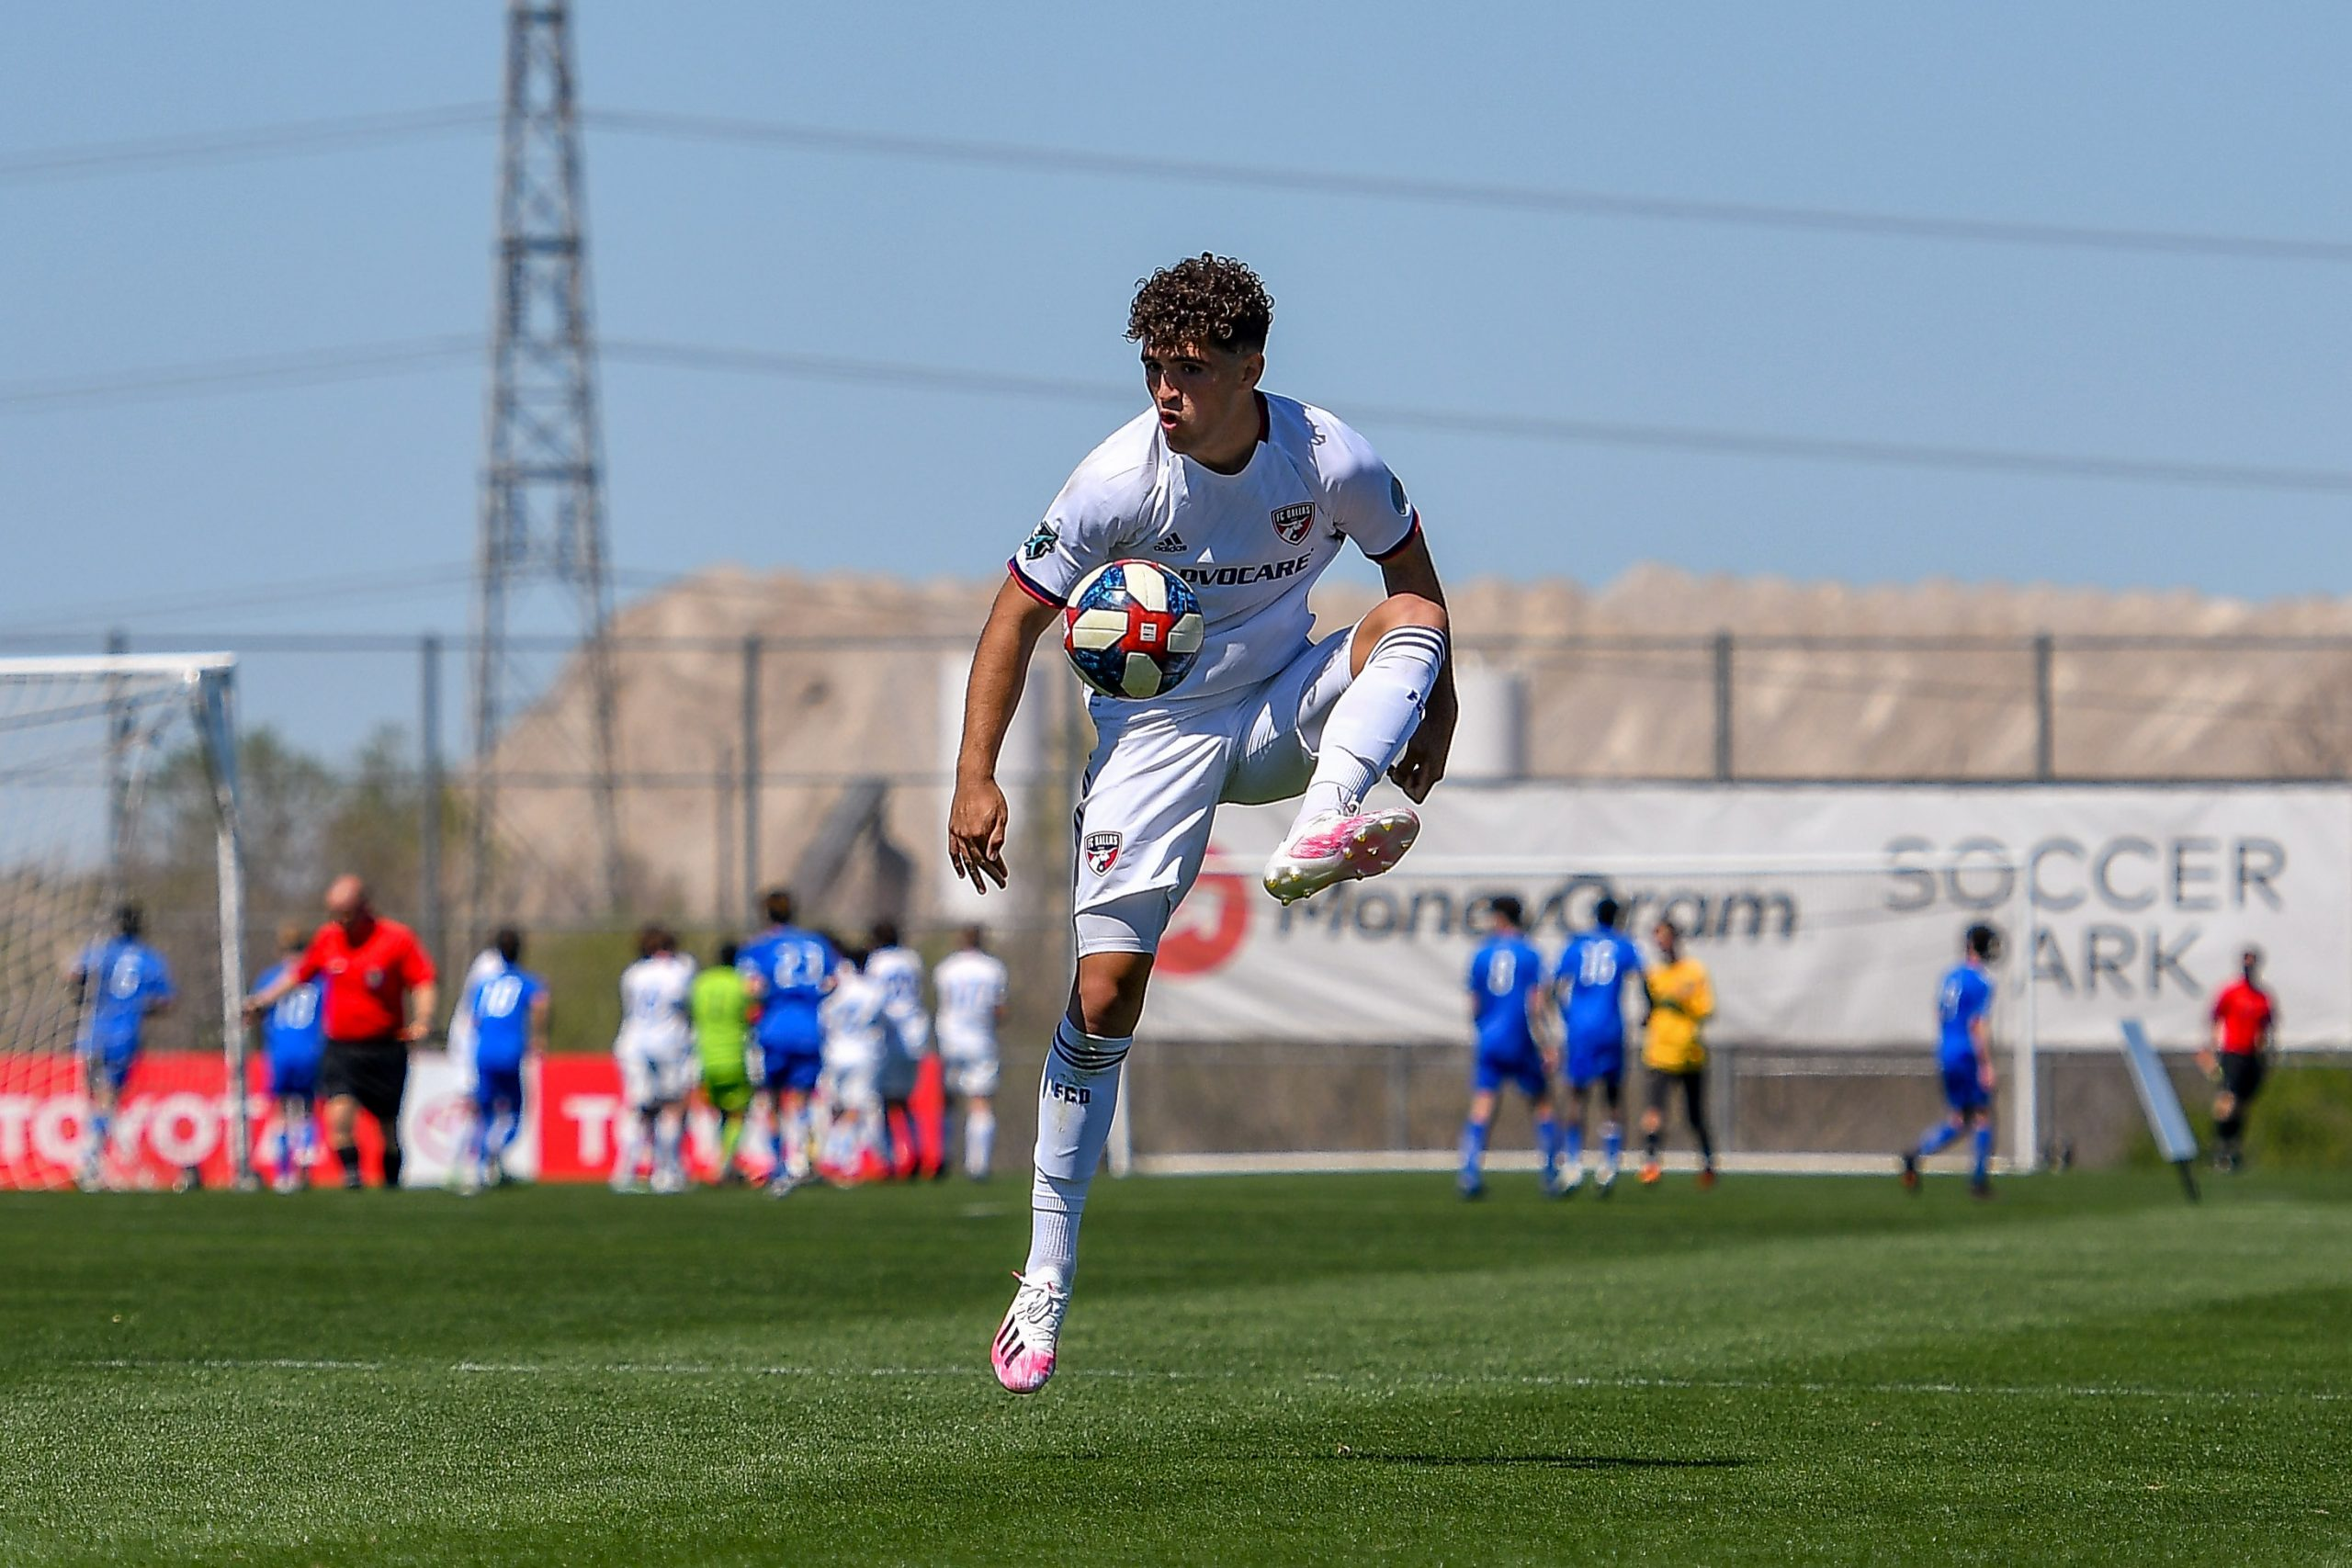 Josh Ramsey brings the ball down in the Dallas Cup match against Black Rock FC.